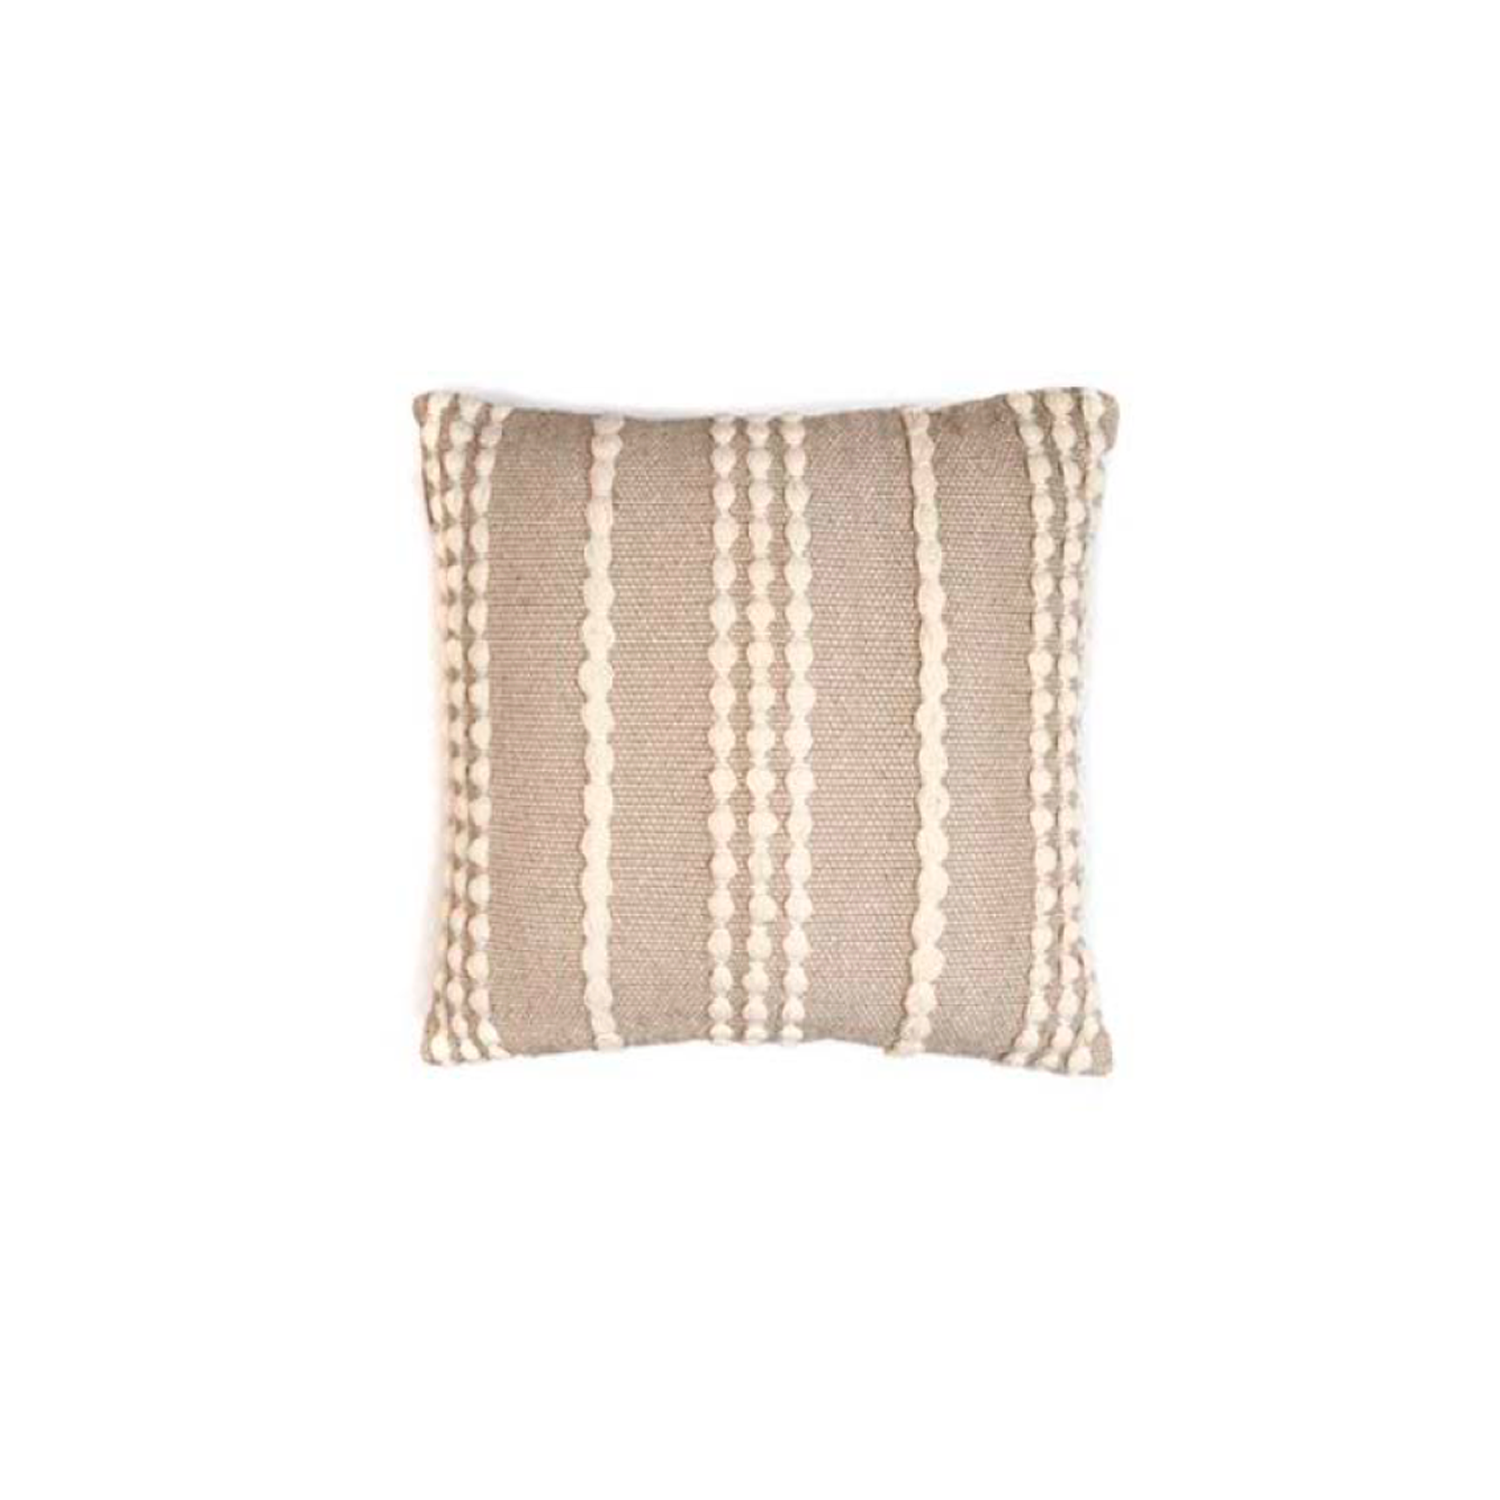 Lua Ecru Cotton Cushion Square - The Flame Sustainable Collection is made from a selection of organic cotton fibres, eco-friendly, hand-woven or elaborated using traditional hand-loom techniques. Carefully knitted within a trained community of women that found in their craft a way to provide their families.  This collection combines Elisa Atheniense mission for responsible sourcing and manufacturing. Each piece is meticulously hand-loom by artisans who practised methods with age-old techniques. With a minimal electricity impact, each item crafted is therefore unique and exclusive. Weavers and artisans are the ultimate lifelines of Elisa Atheniense Home Products.  The hand woven cotton, washable cushion cover is made in Brazil and the inner cushion is made in the UK.   | Matter of Stuff